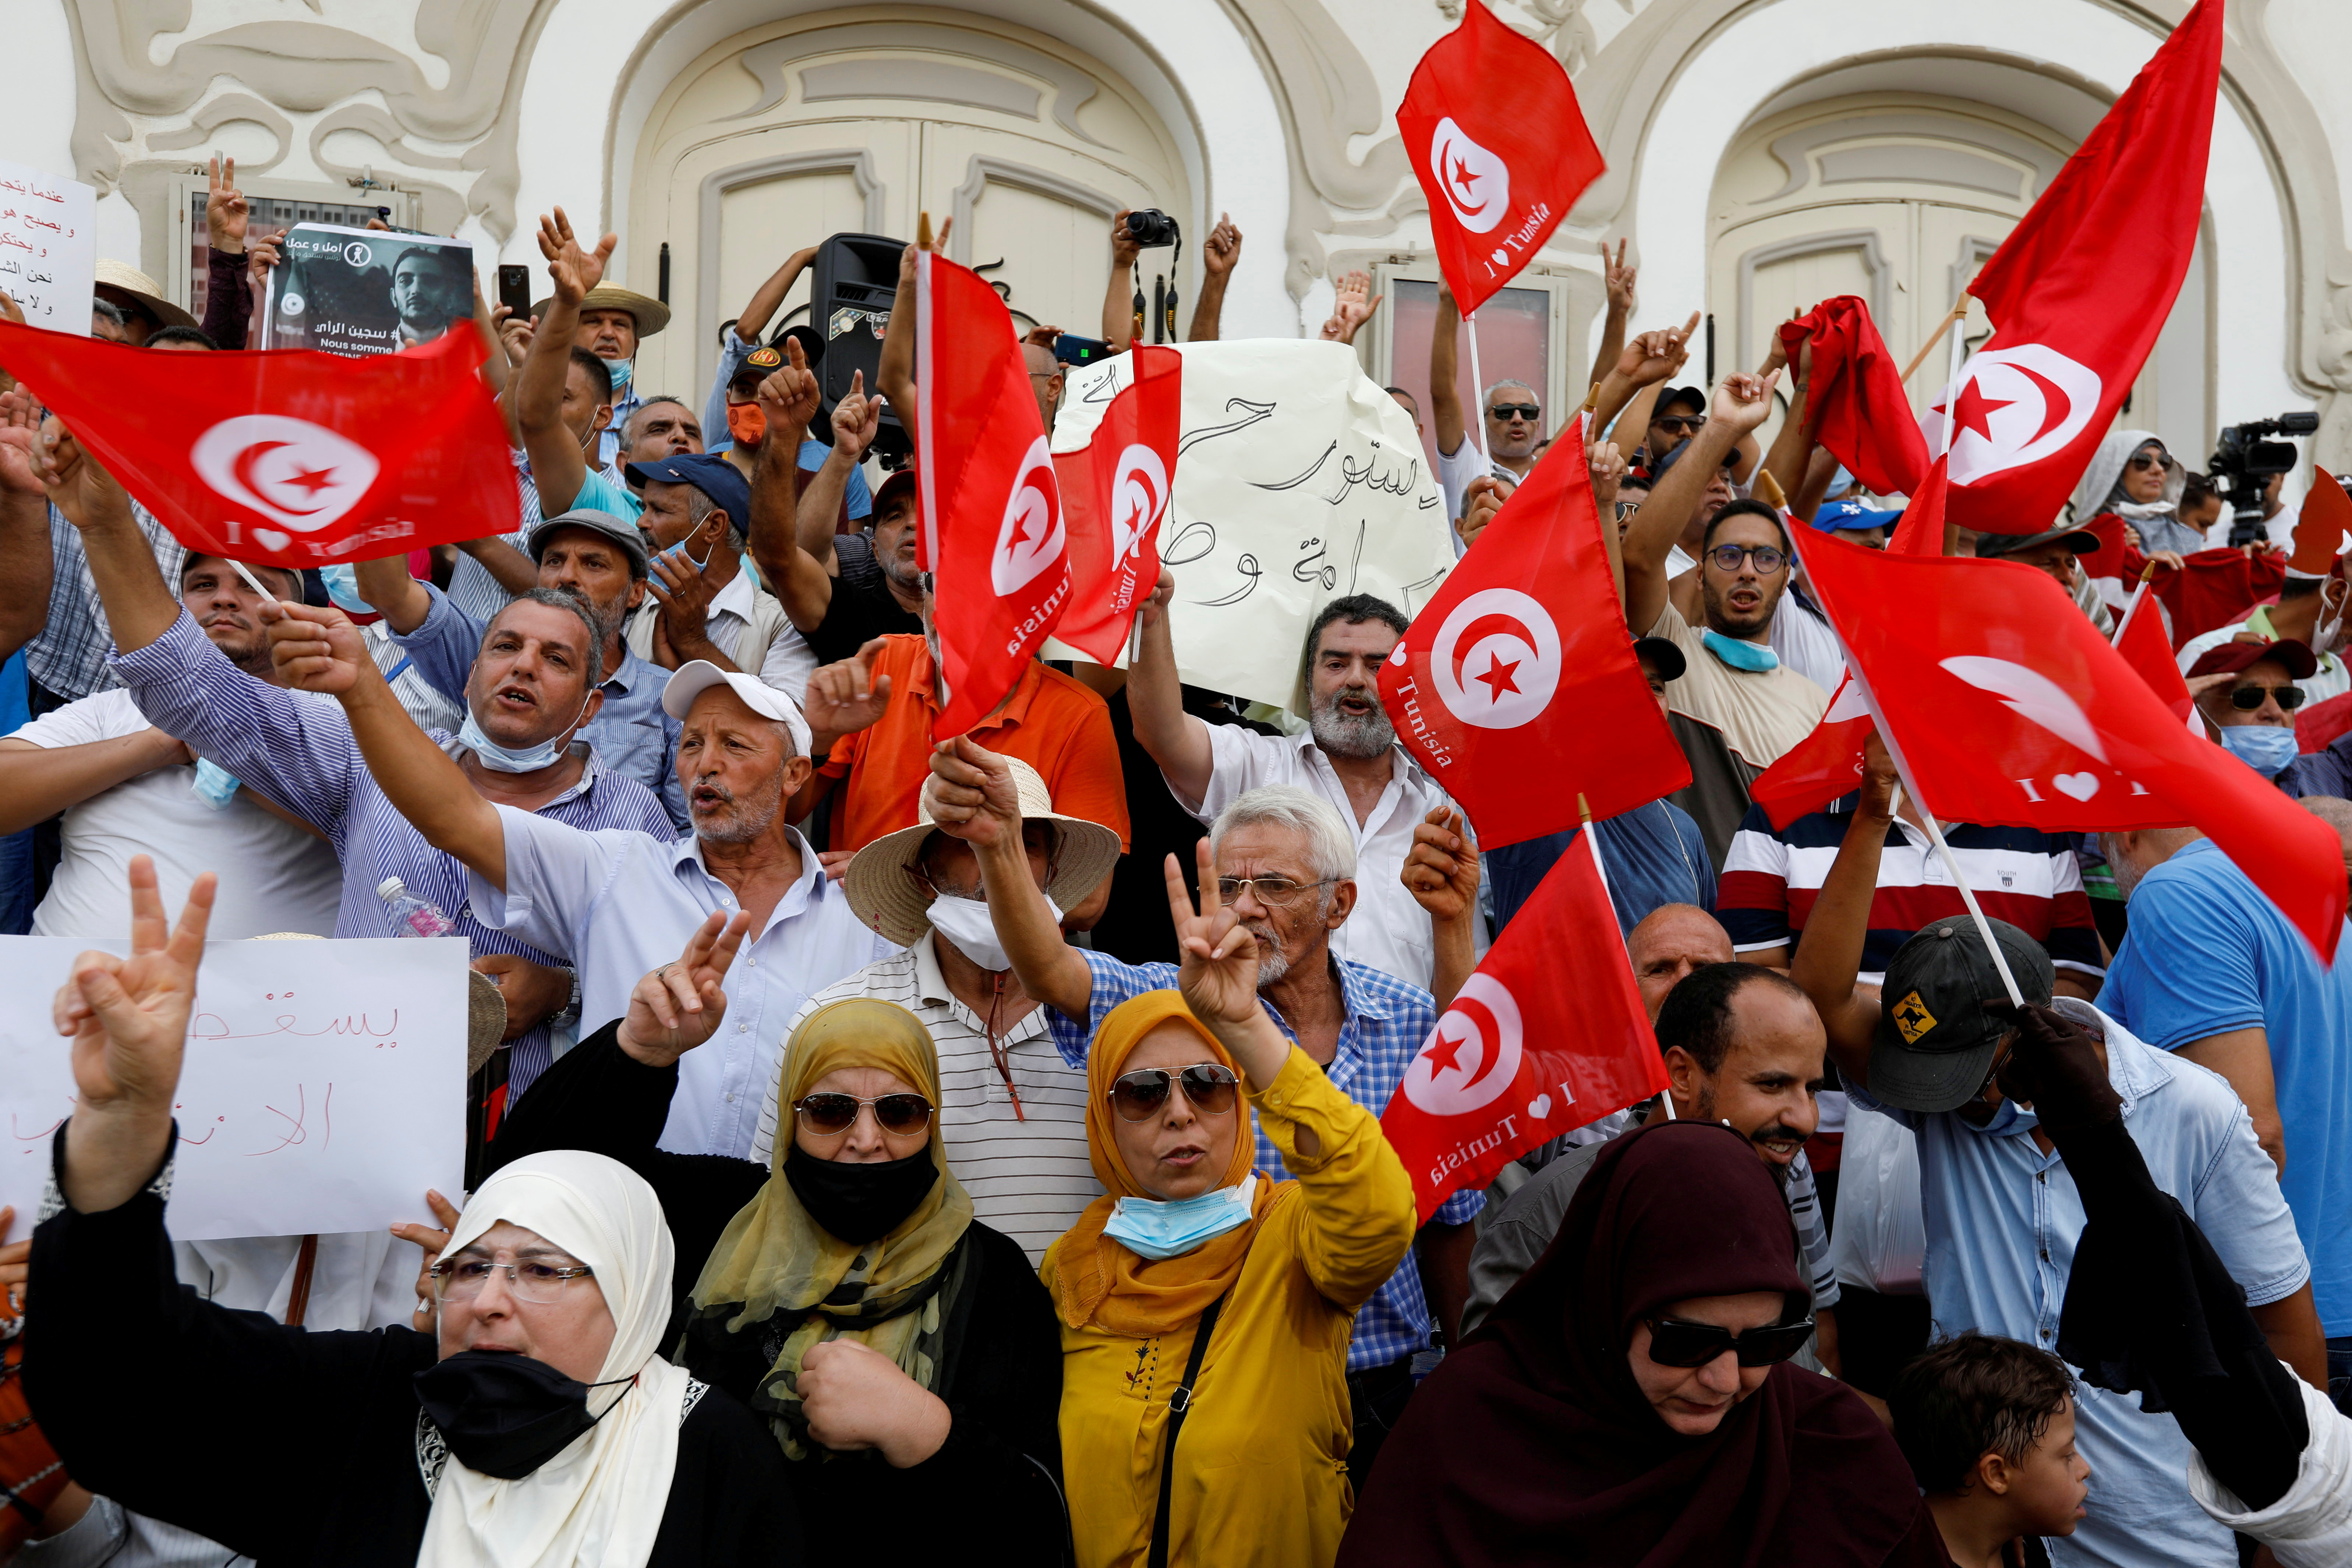 Opponents of Tunisia's President Kais Saied take part in a protest against what they call his coup on July 25, in Tunis, Tunisia September 18, 2021. REUTERS/Zoubeir Souissi/File Photo